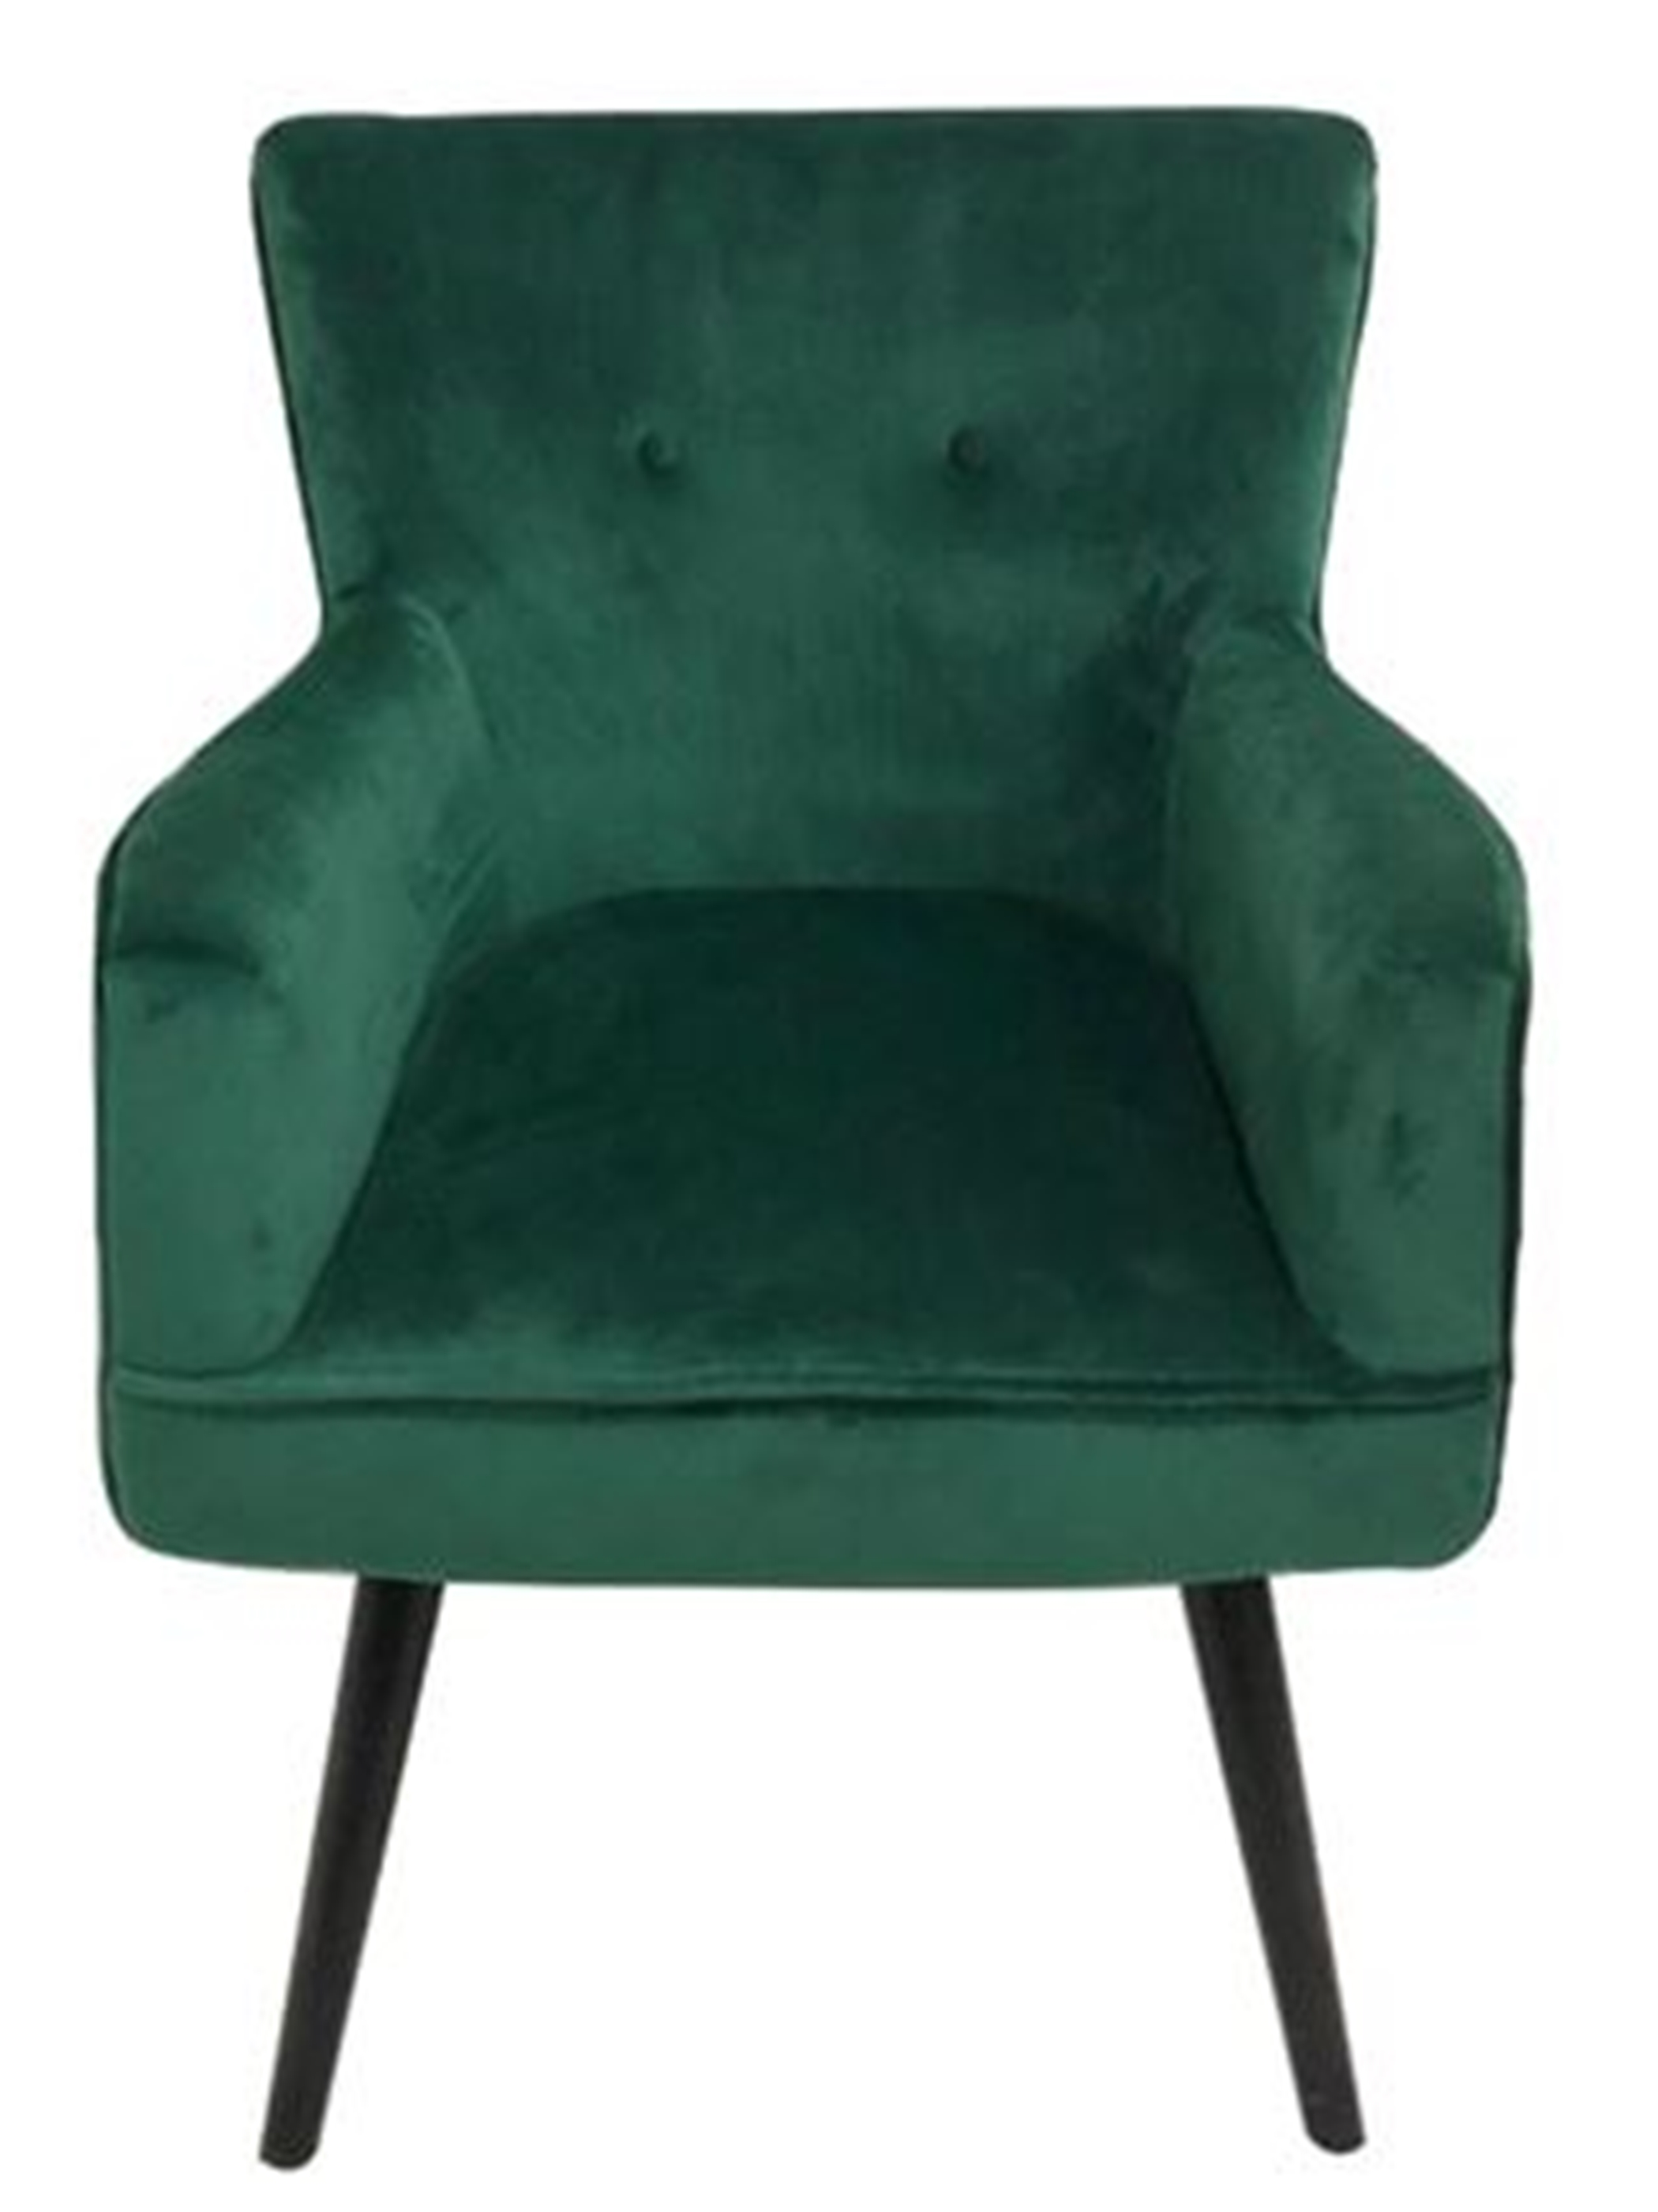 903070 - Accent Chair